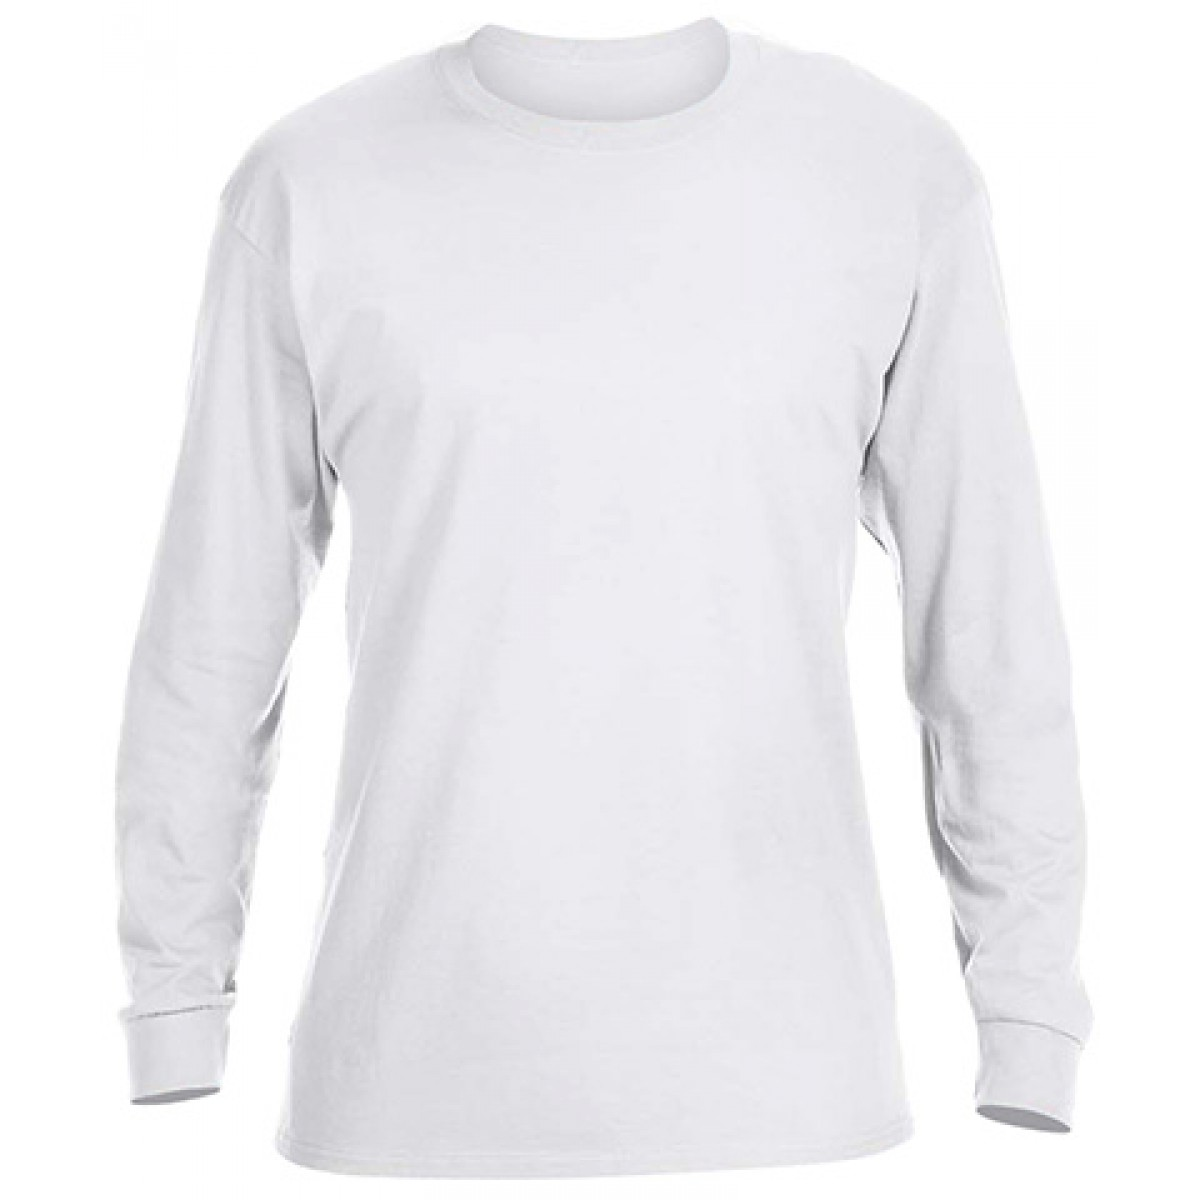 Basic Long Sleeve Crew Neck -White-S